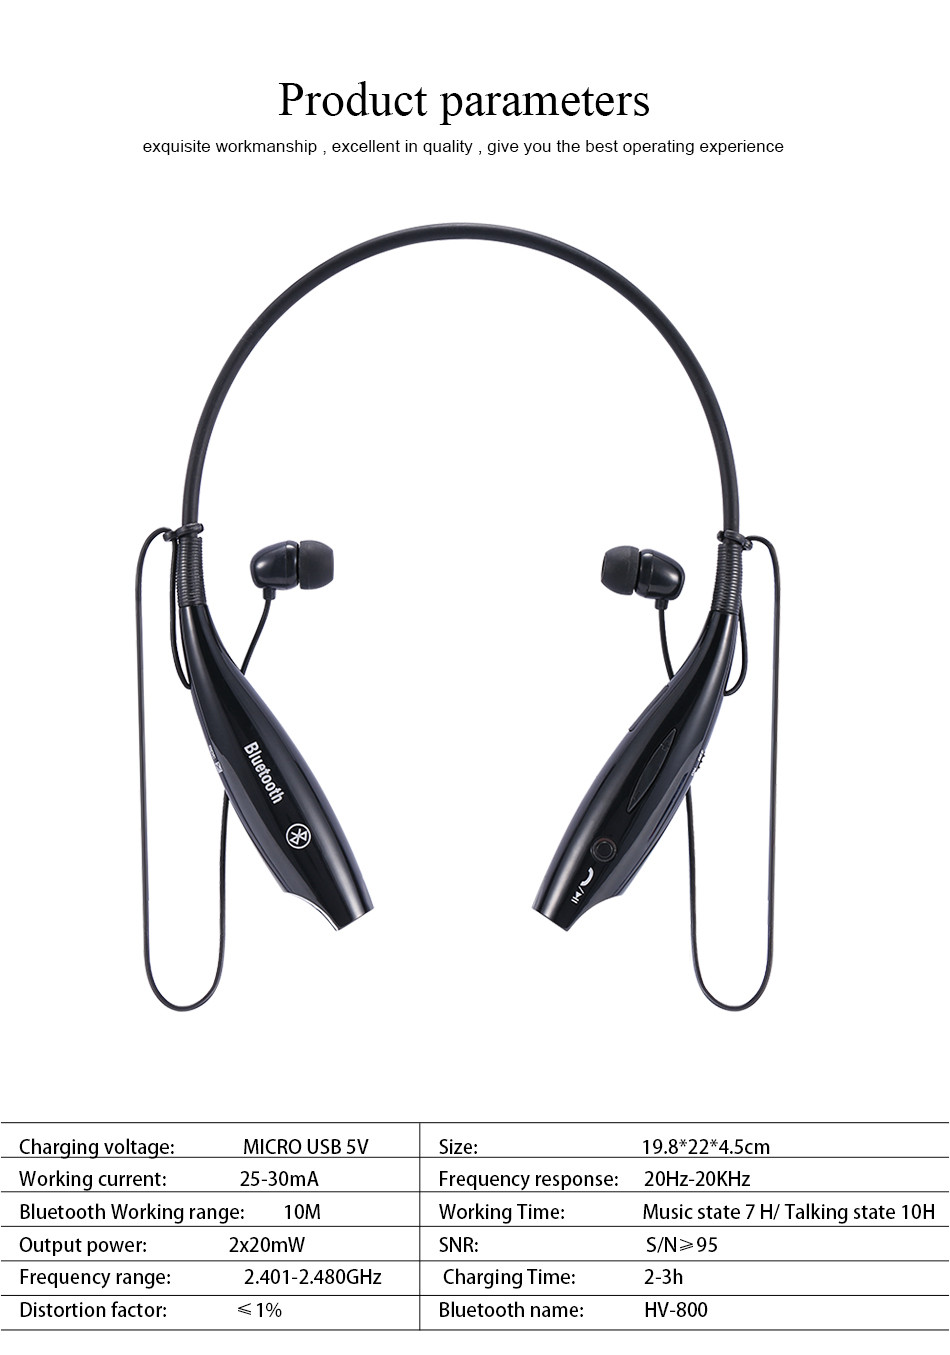 1a62f811b7b HV-800 Sports Wireless Bluetooth Headphones Stereo Earbuds Earpods Neckband  Style Headset with Mic for Smart Phone Xiaomi Phone